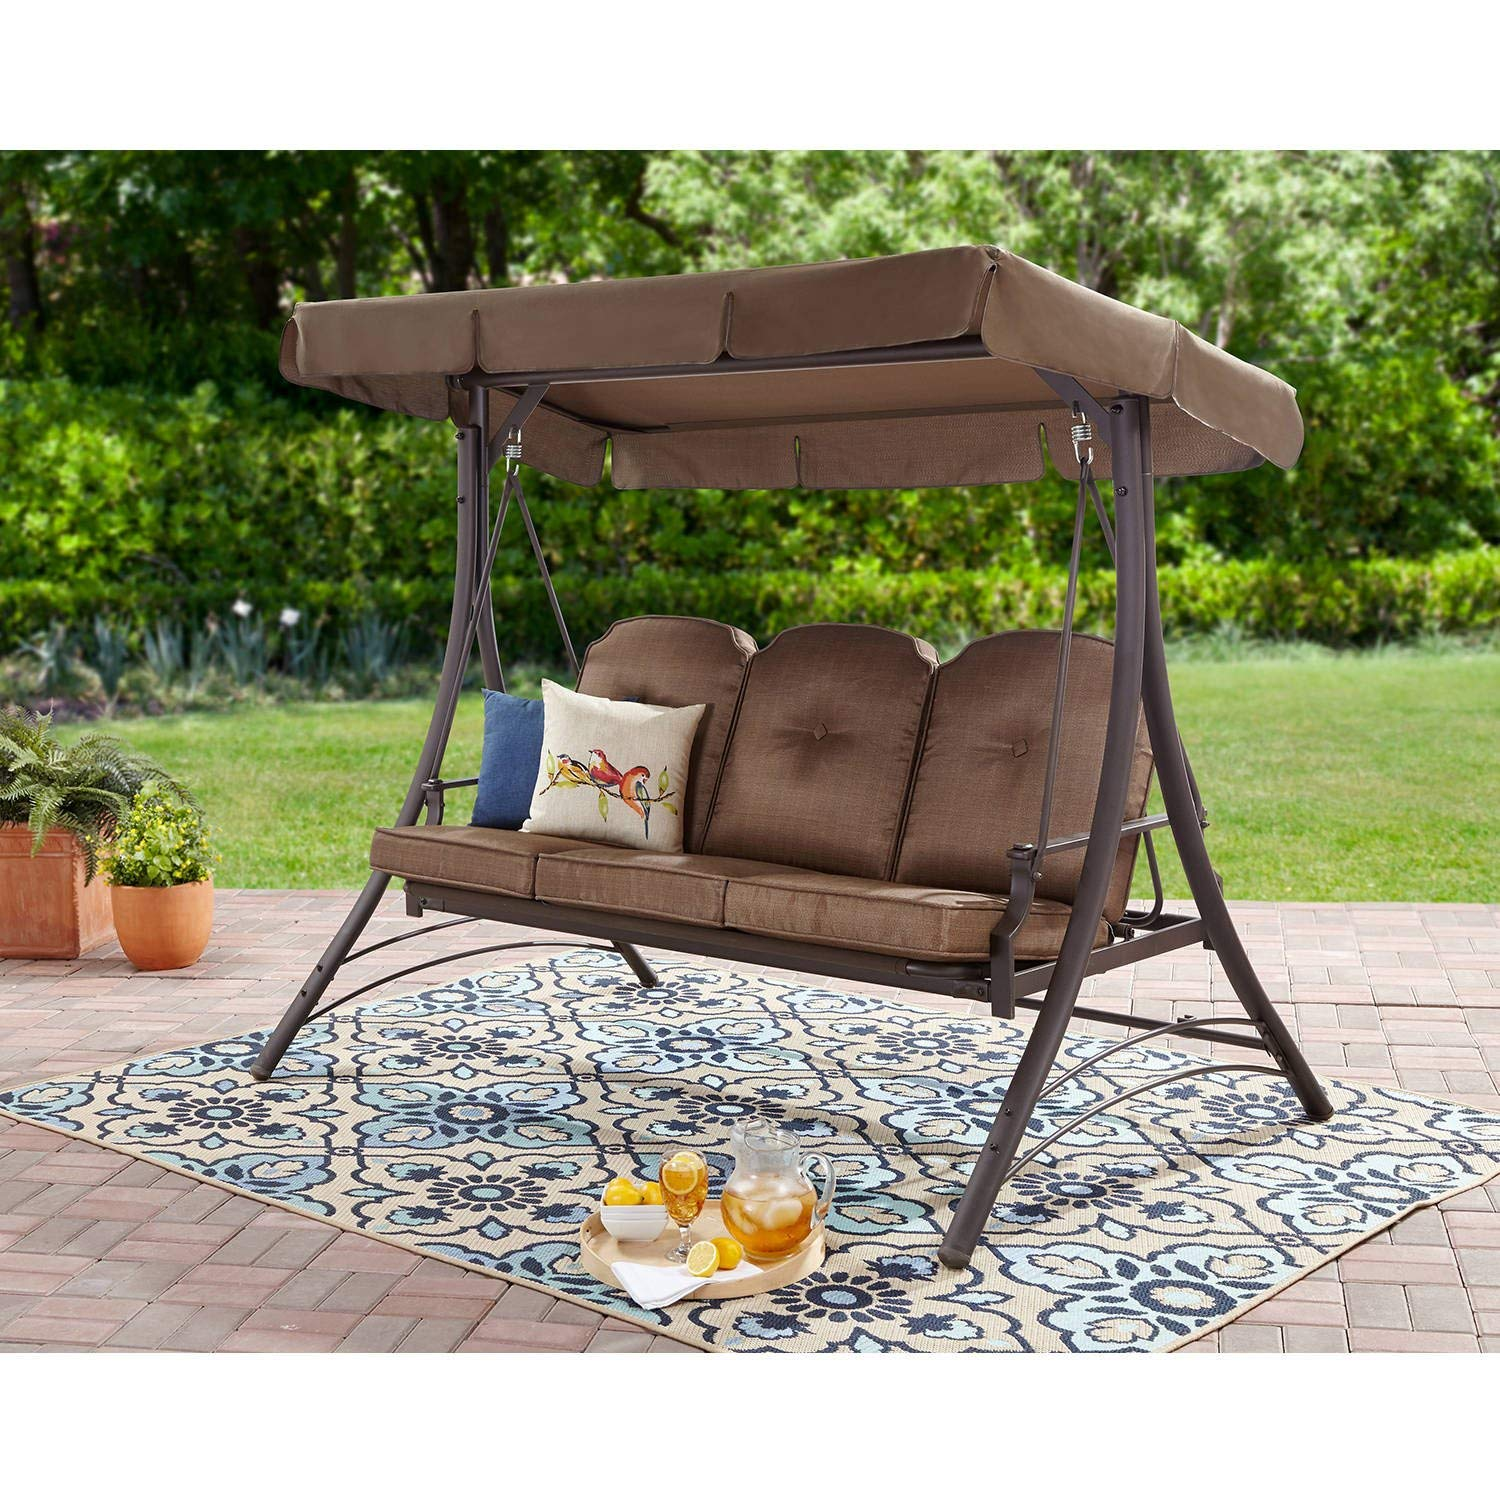 Mainstay Durable Rust-resistant Powder-Coated Steel Frame 3-Person Canopy Porch Swing Bed